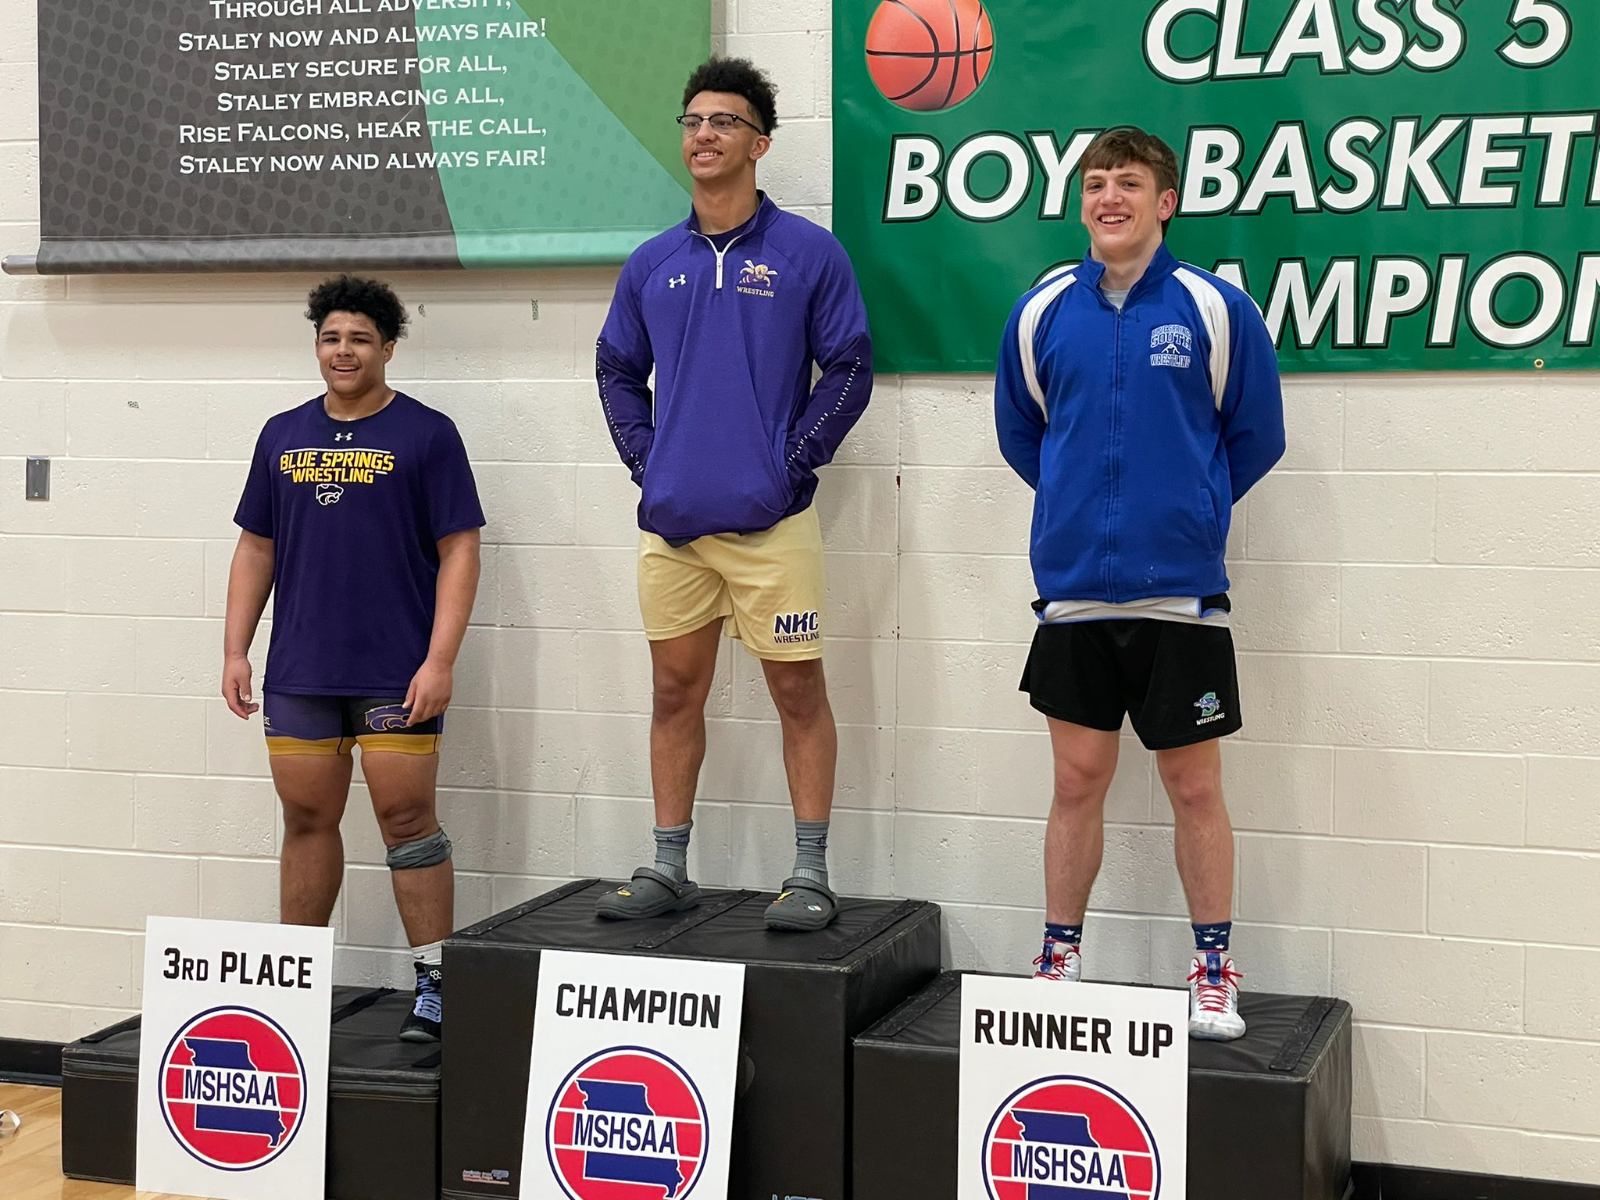 Wrestler, Tommy LaPour, Headed to State